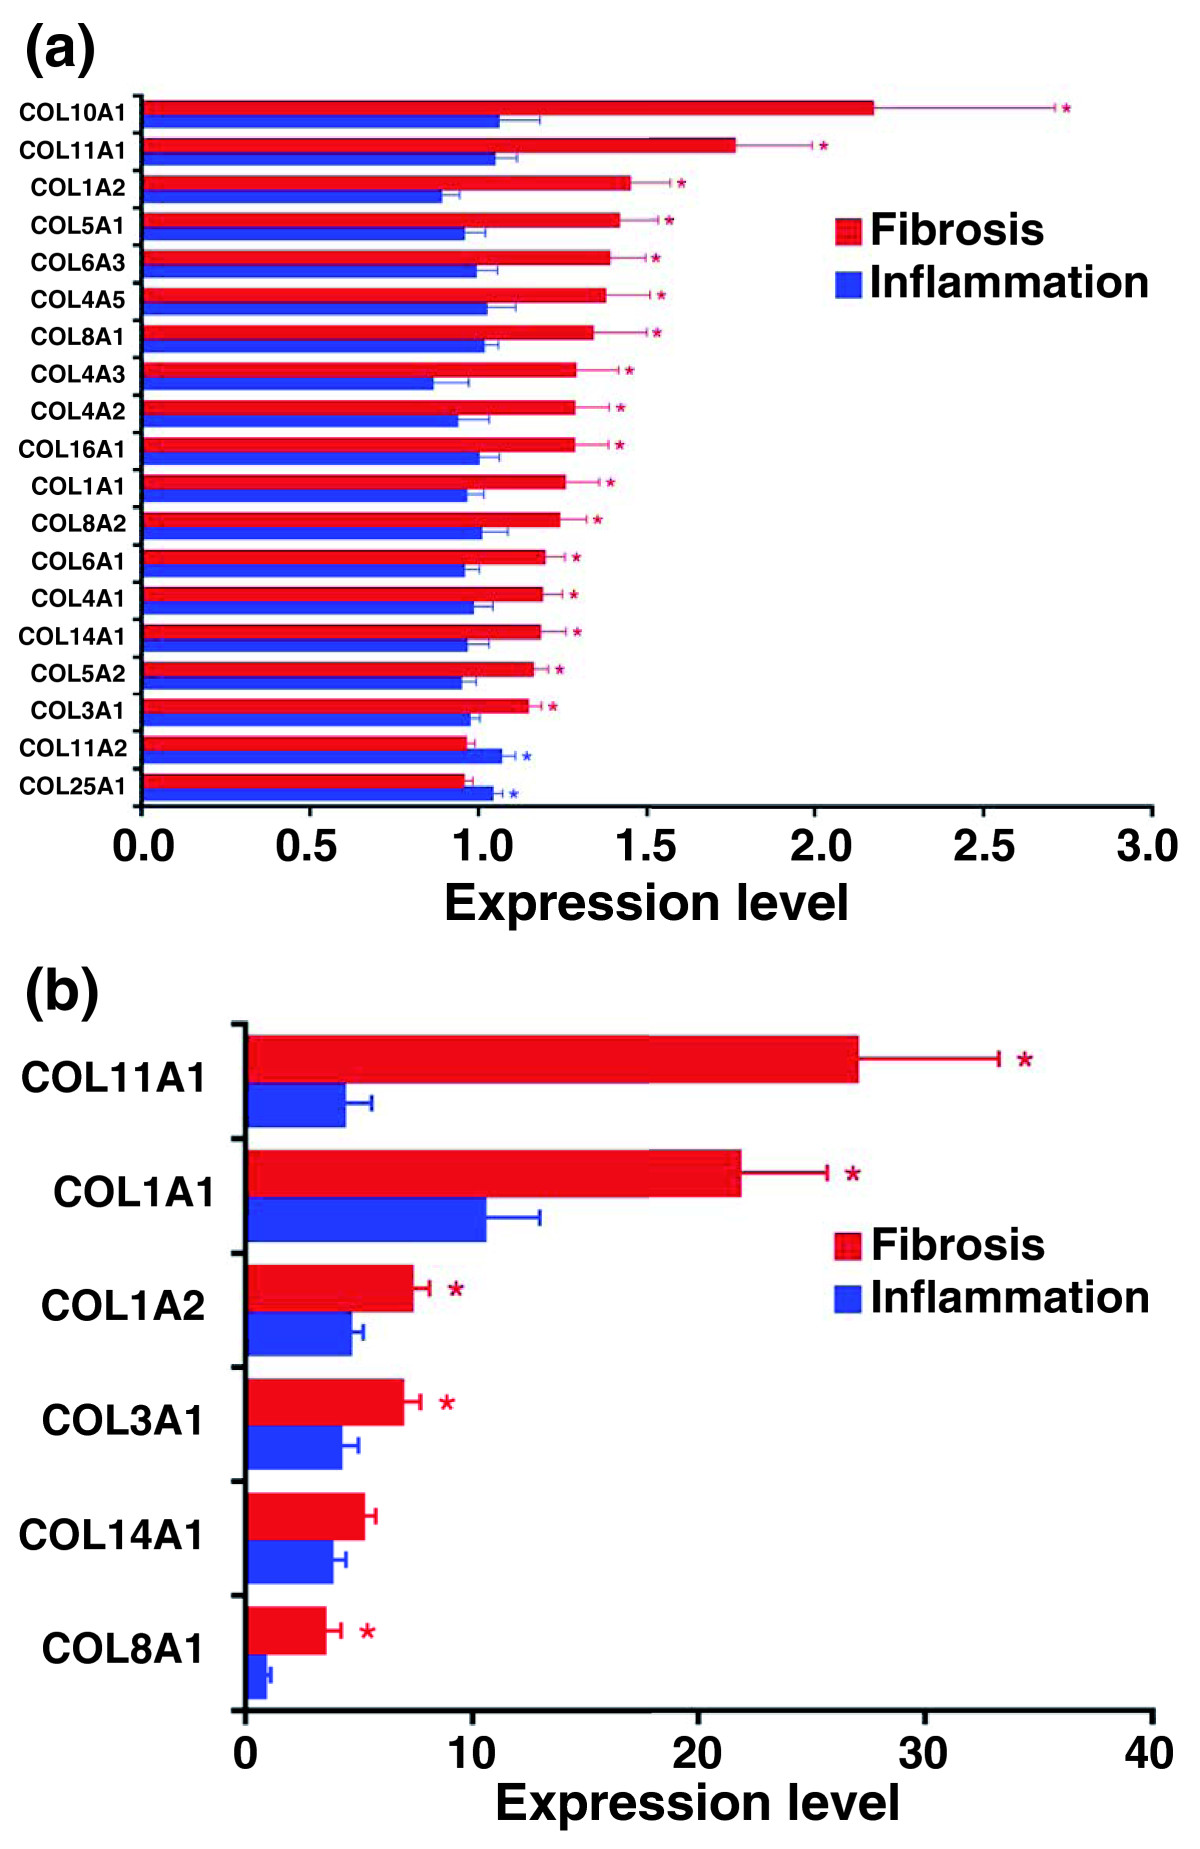 http://static-content.springer.com/image/art%3A10.1186%2Fgm154/MediaObjects/13073_2010_Article_154_Fig4_HTML.jpg